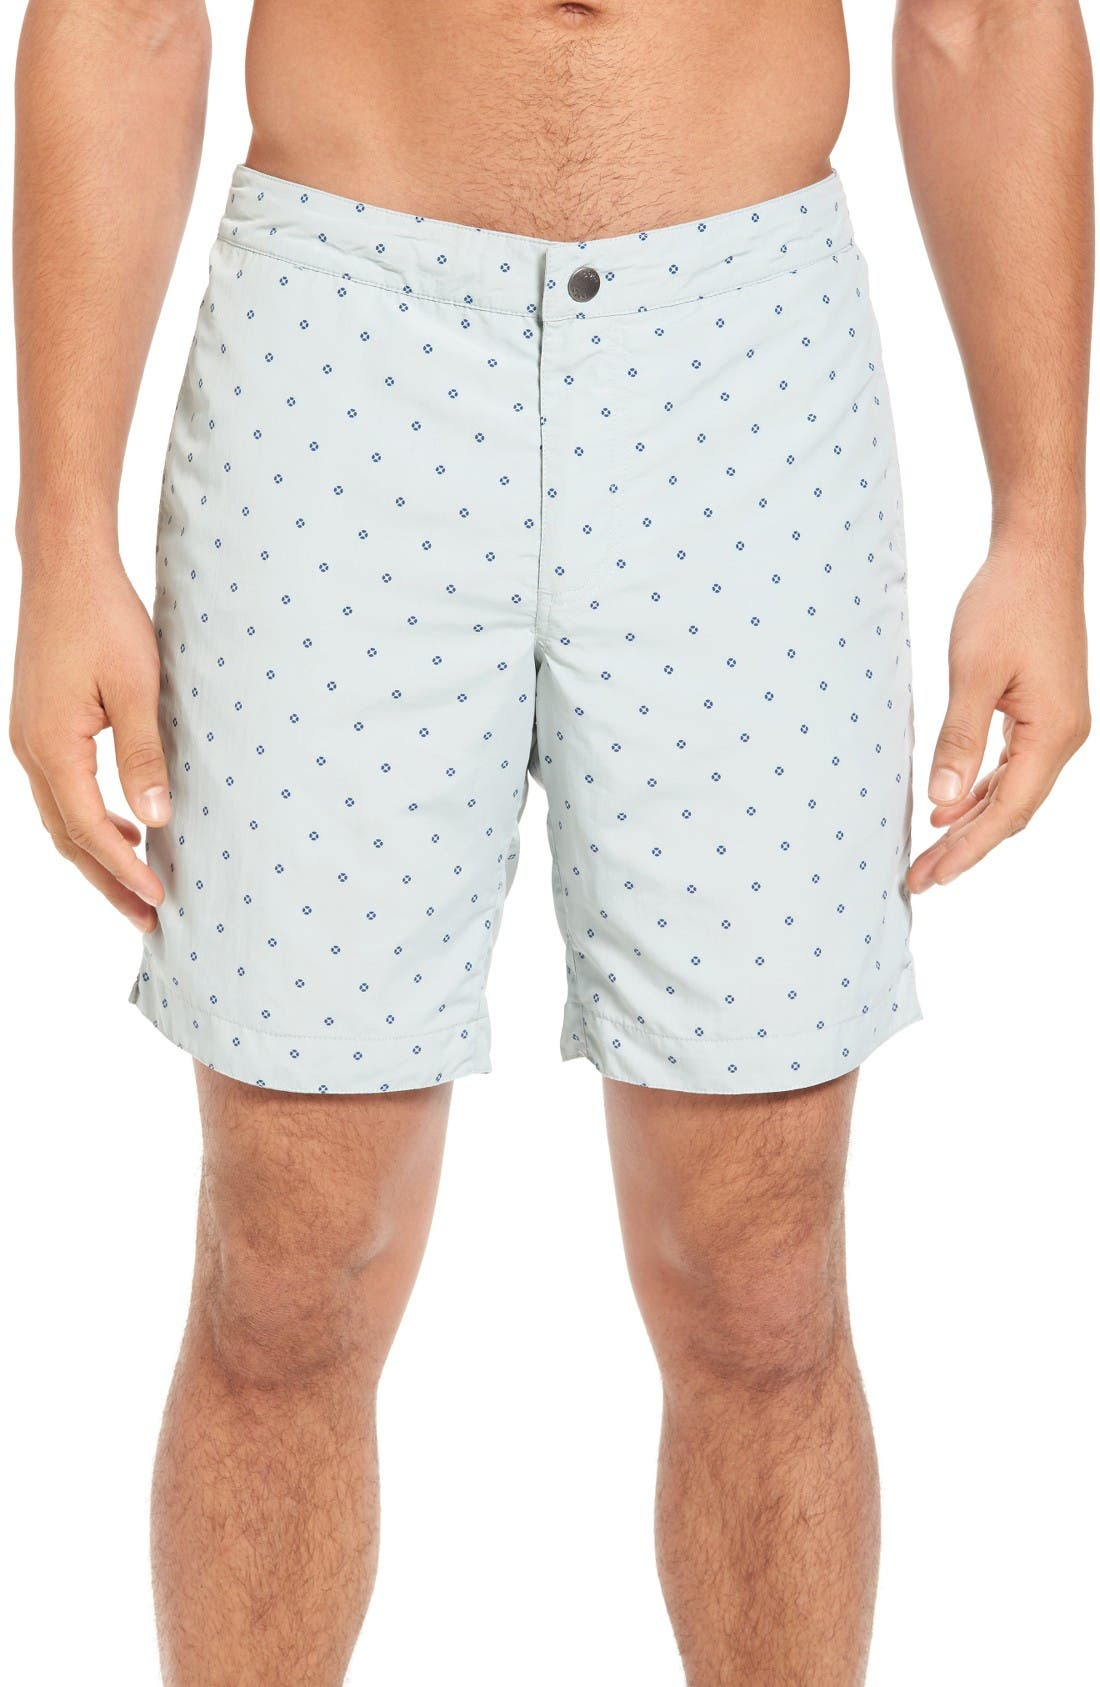 BOTO Aruba Tailored Fit 8.5 Inch Board Shorts